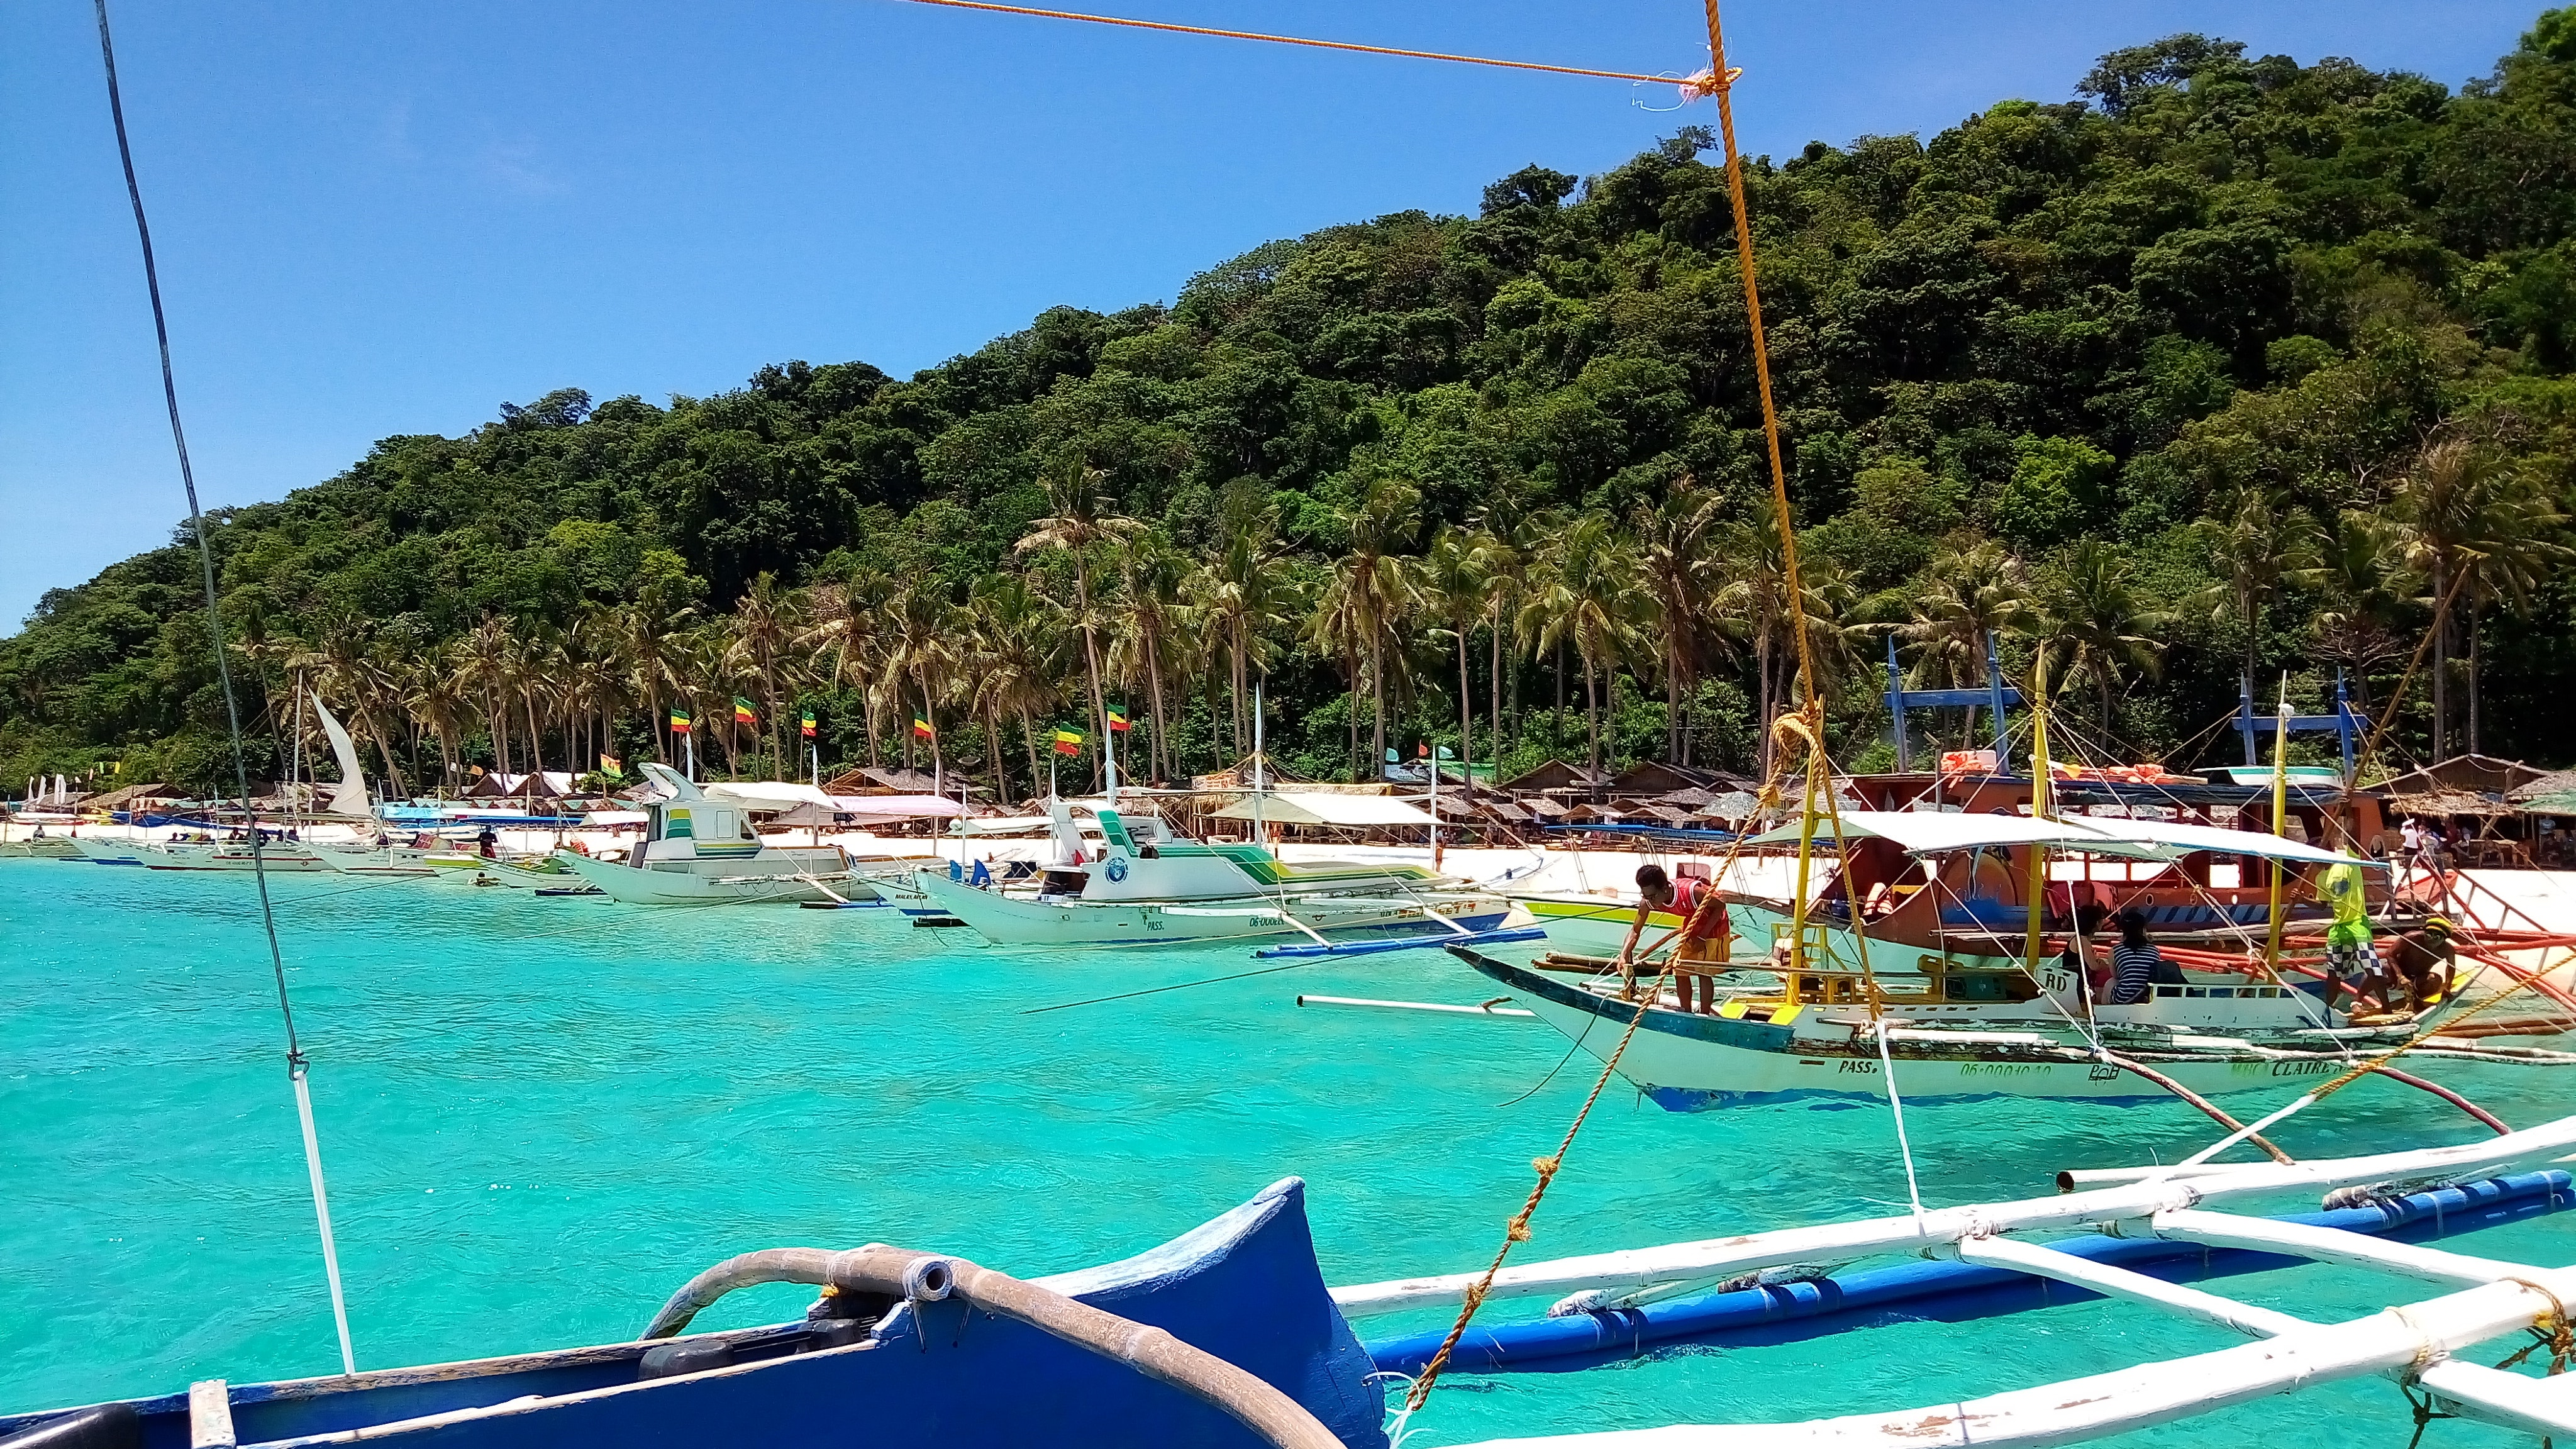 White Beach is located on the small island of Boracay in the Philippines. Renowned for its nightlife, silky sand beaches and shallow, crystal clear water, White Beach has won numerous magazine awards for its beauty and serene atmosphere.